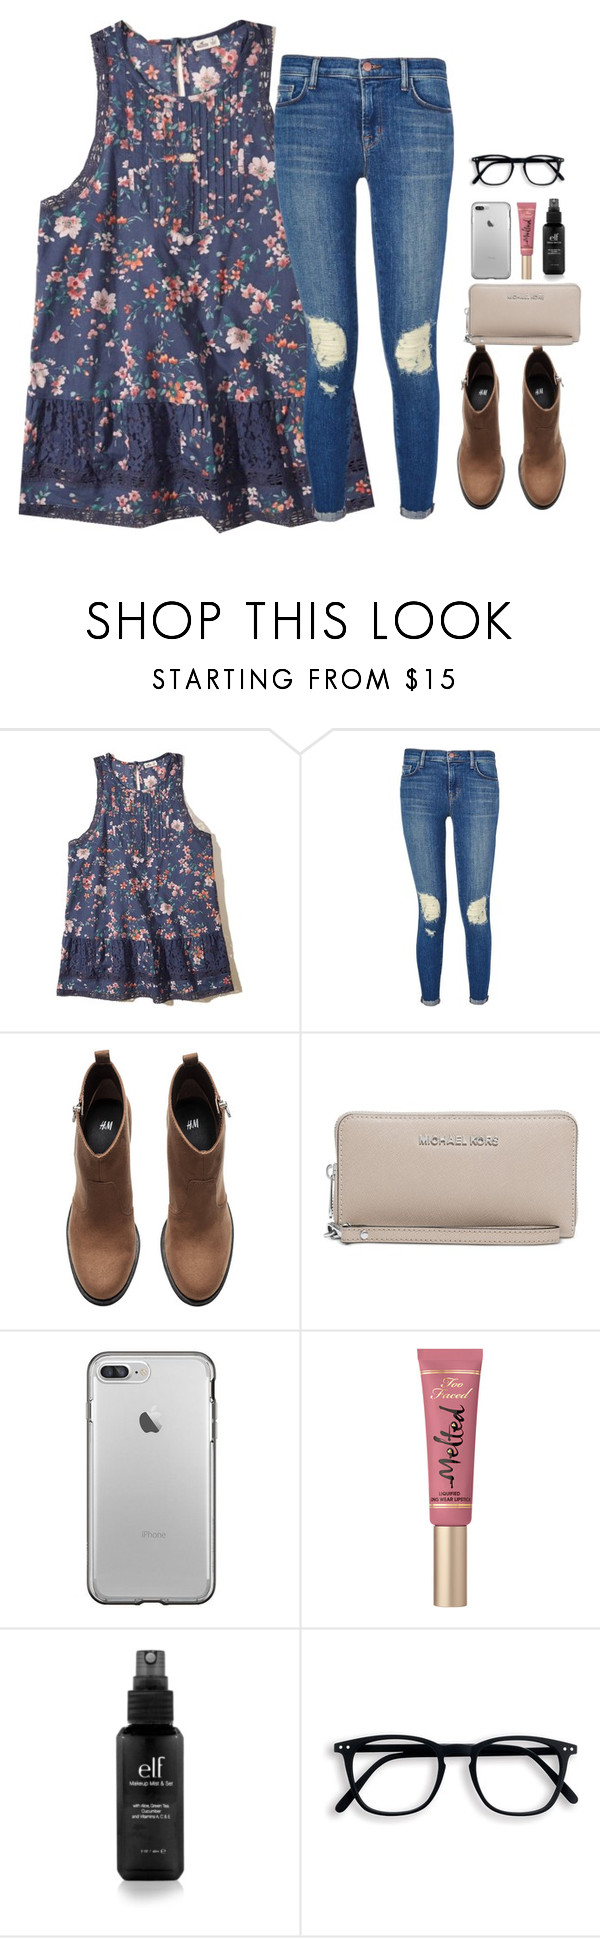 """""""happy saturday!!"""" by arieannahicks ❤ liked on Polyvore featuring Hollister Co., J Brand, H&M, Michael Kors, Too Faced Cosmetics and Kendra Scott"""